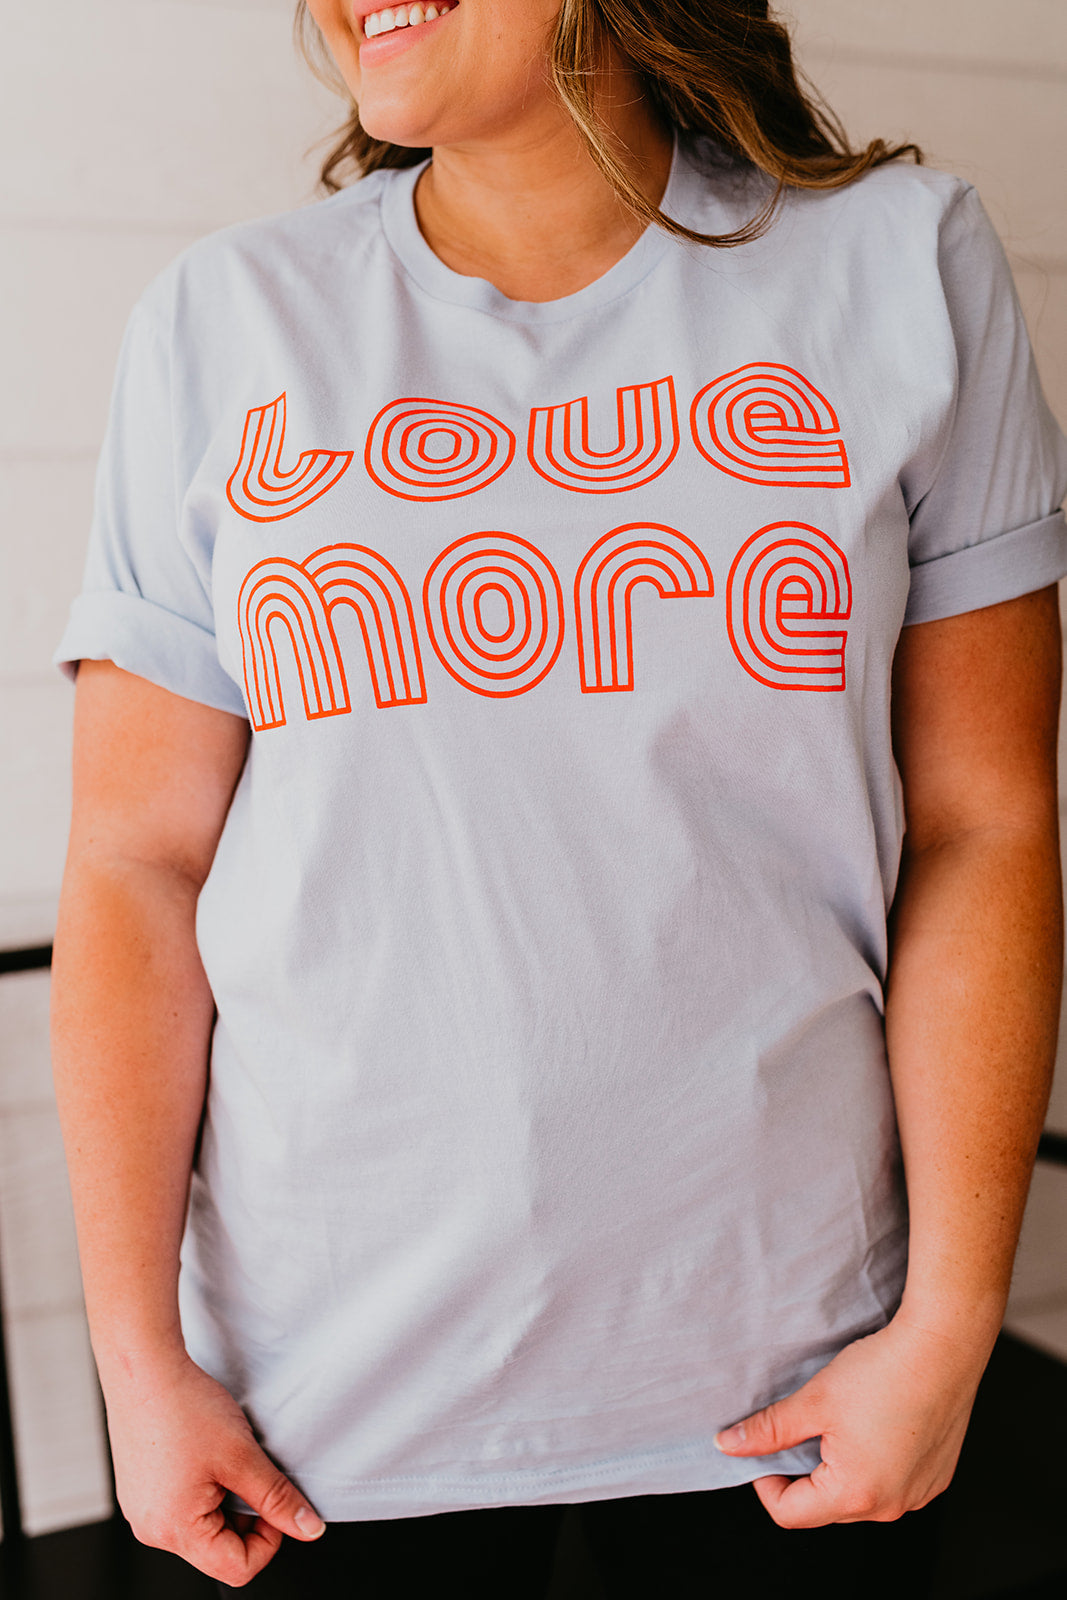 THE LOVE MORE GRAPHIC TEE IN LIGHT BLUE